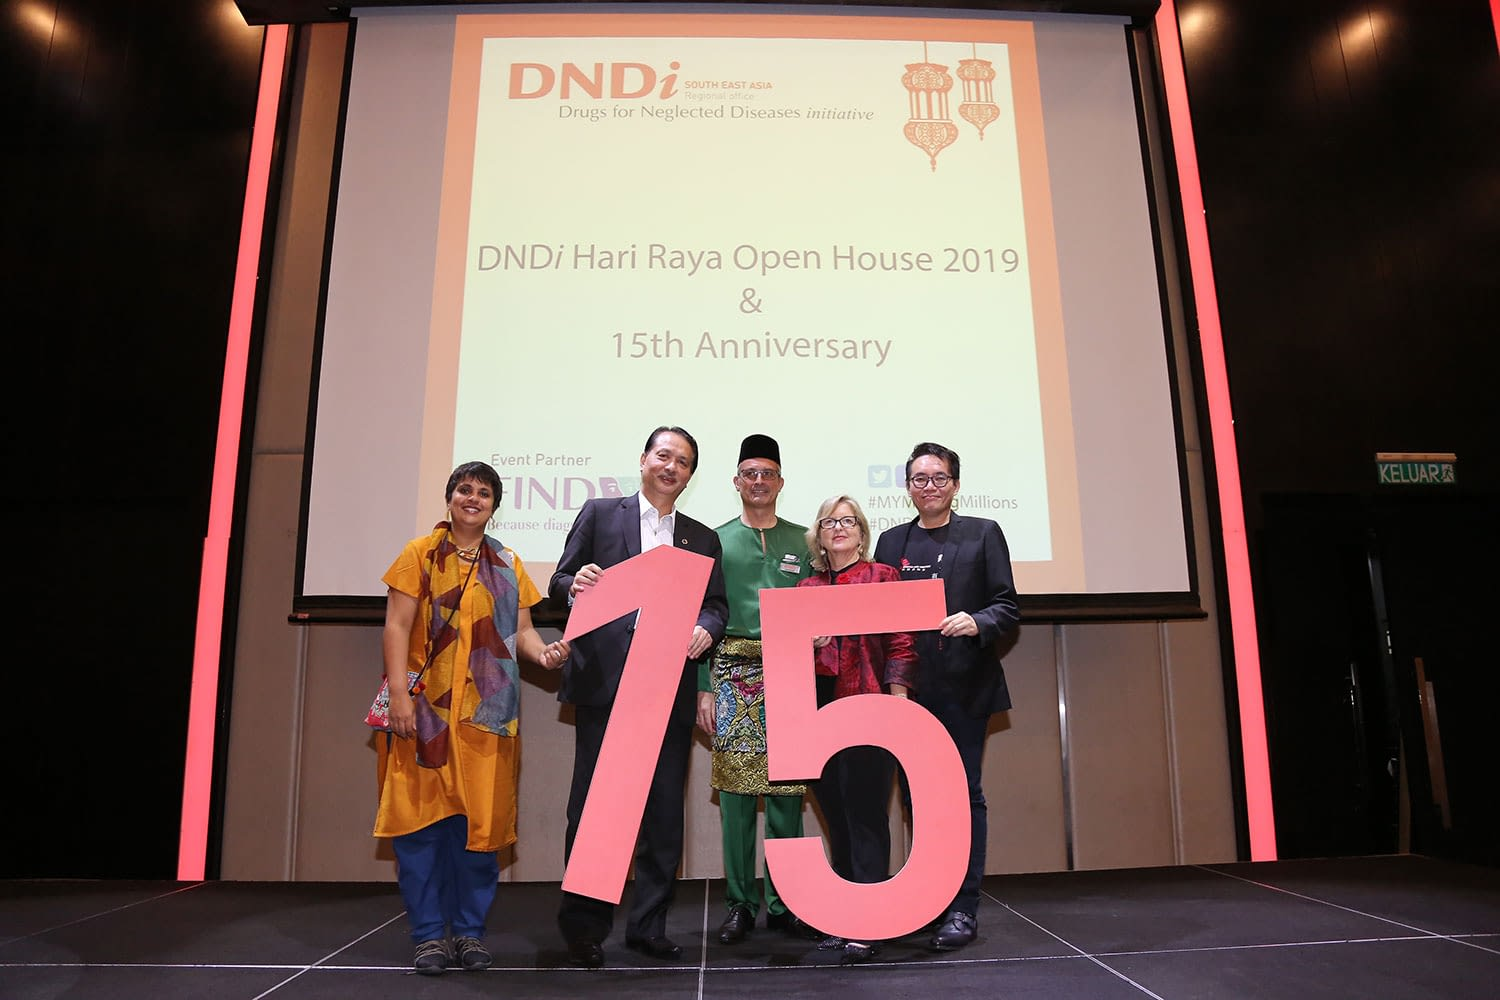 From left: Leena Menghaney of MSF Access Campaign in India, Datuk Dr Noor Hisham Abdullah of the Ministry of Health of Malaysia, Jean-Michel Piedagnel Director of DNDi South-East Asia, Joelle Tanguy DNDi's Director of External Affairs, and Dr Nason Tan of Médecins Sans Frontières (MSF) Hong Kong.